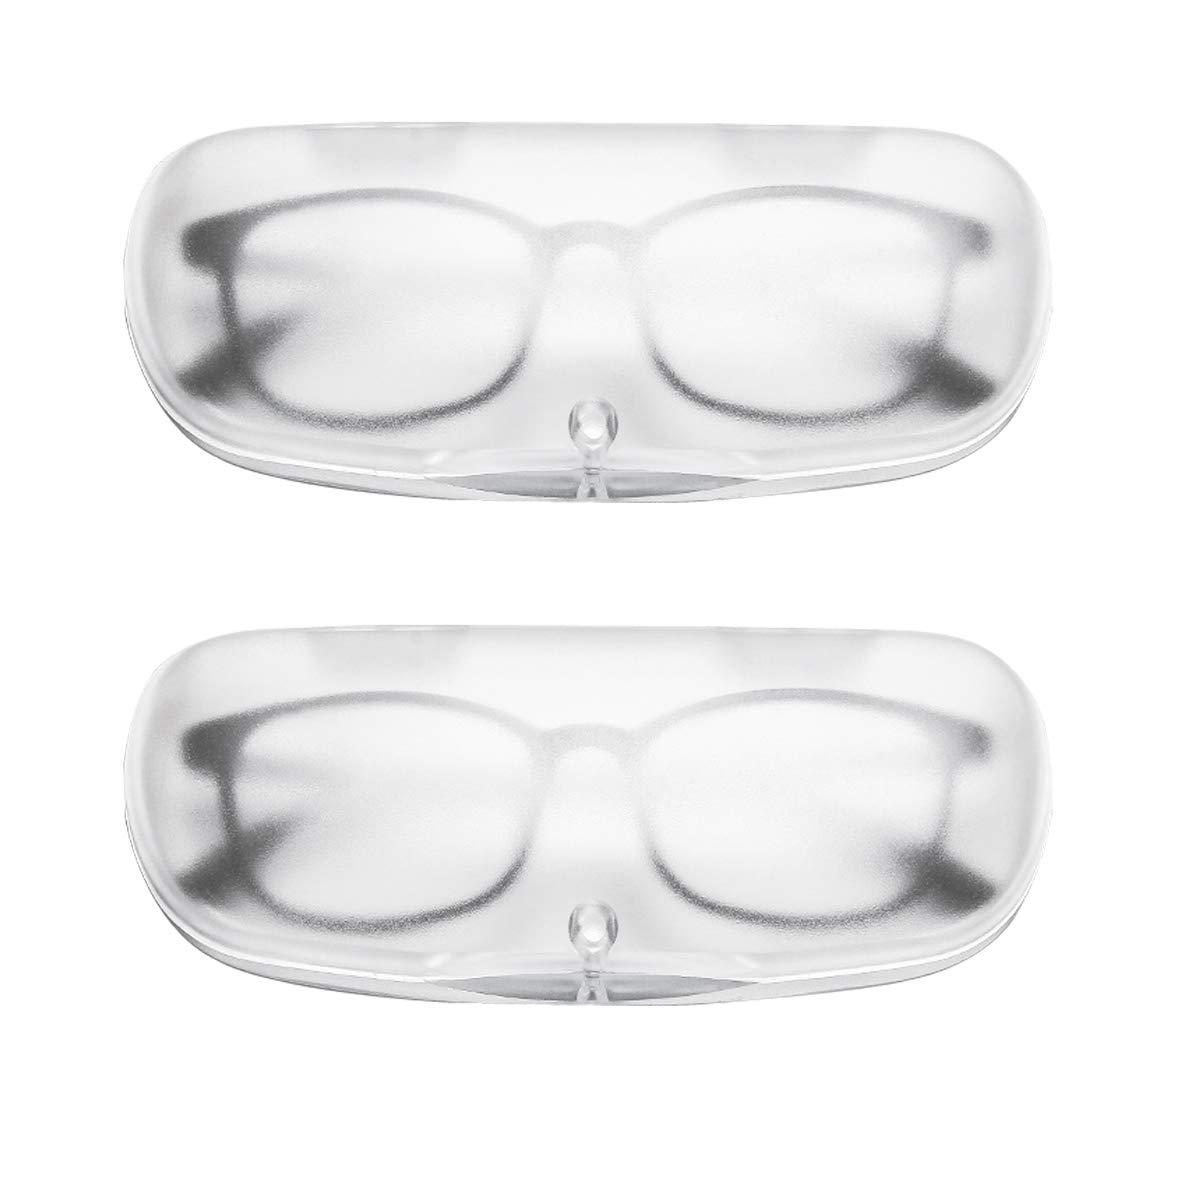 EZESO Magnet Buckle Frosted Translucent Nearsighted Eyeglasses Case (2 pcs Transparent White)